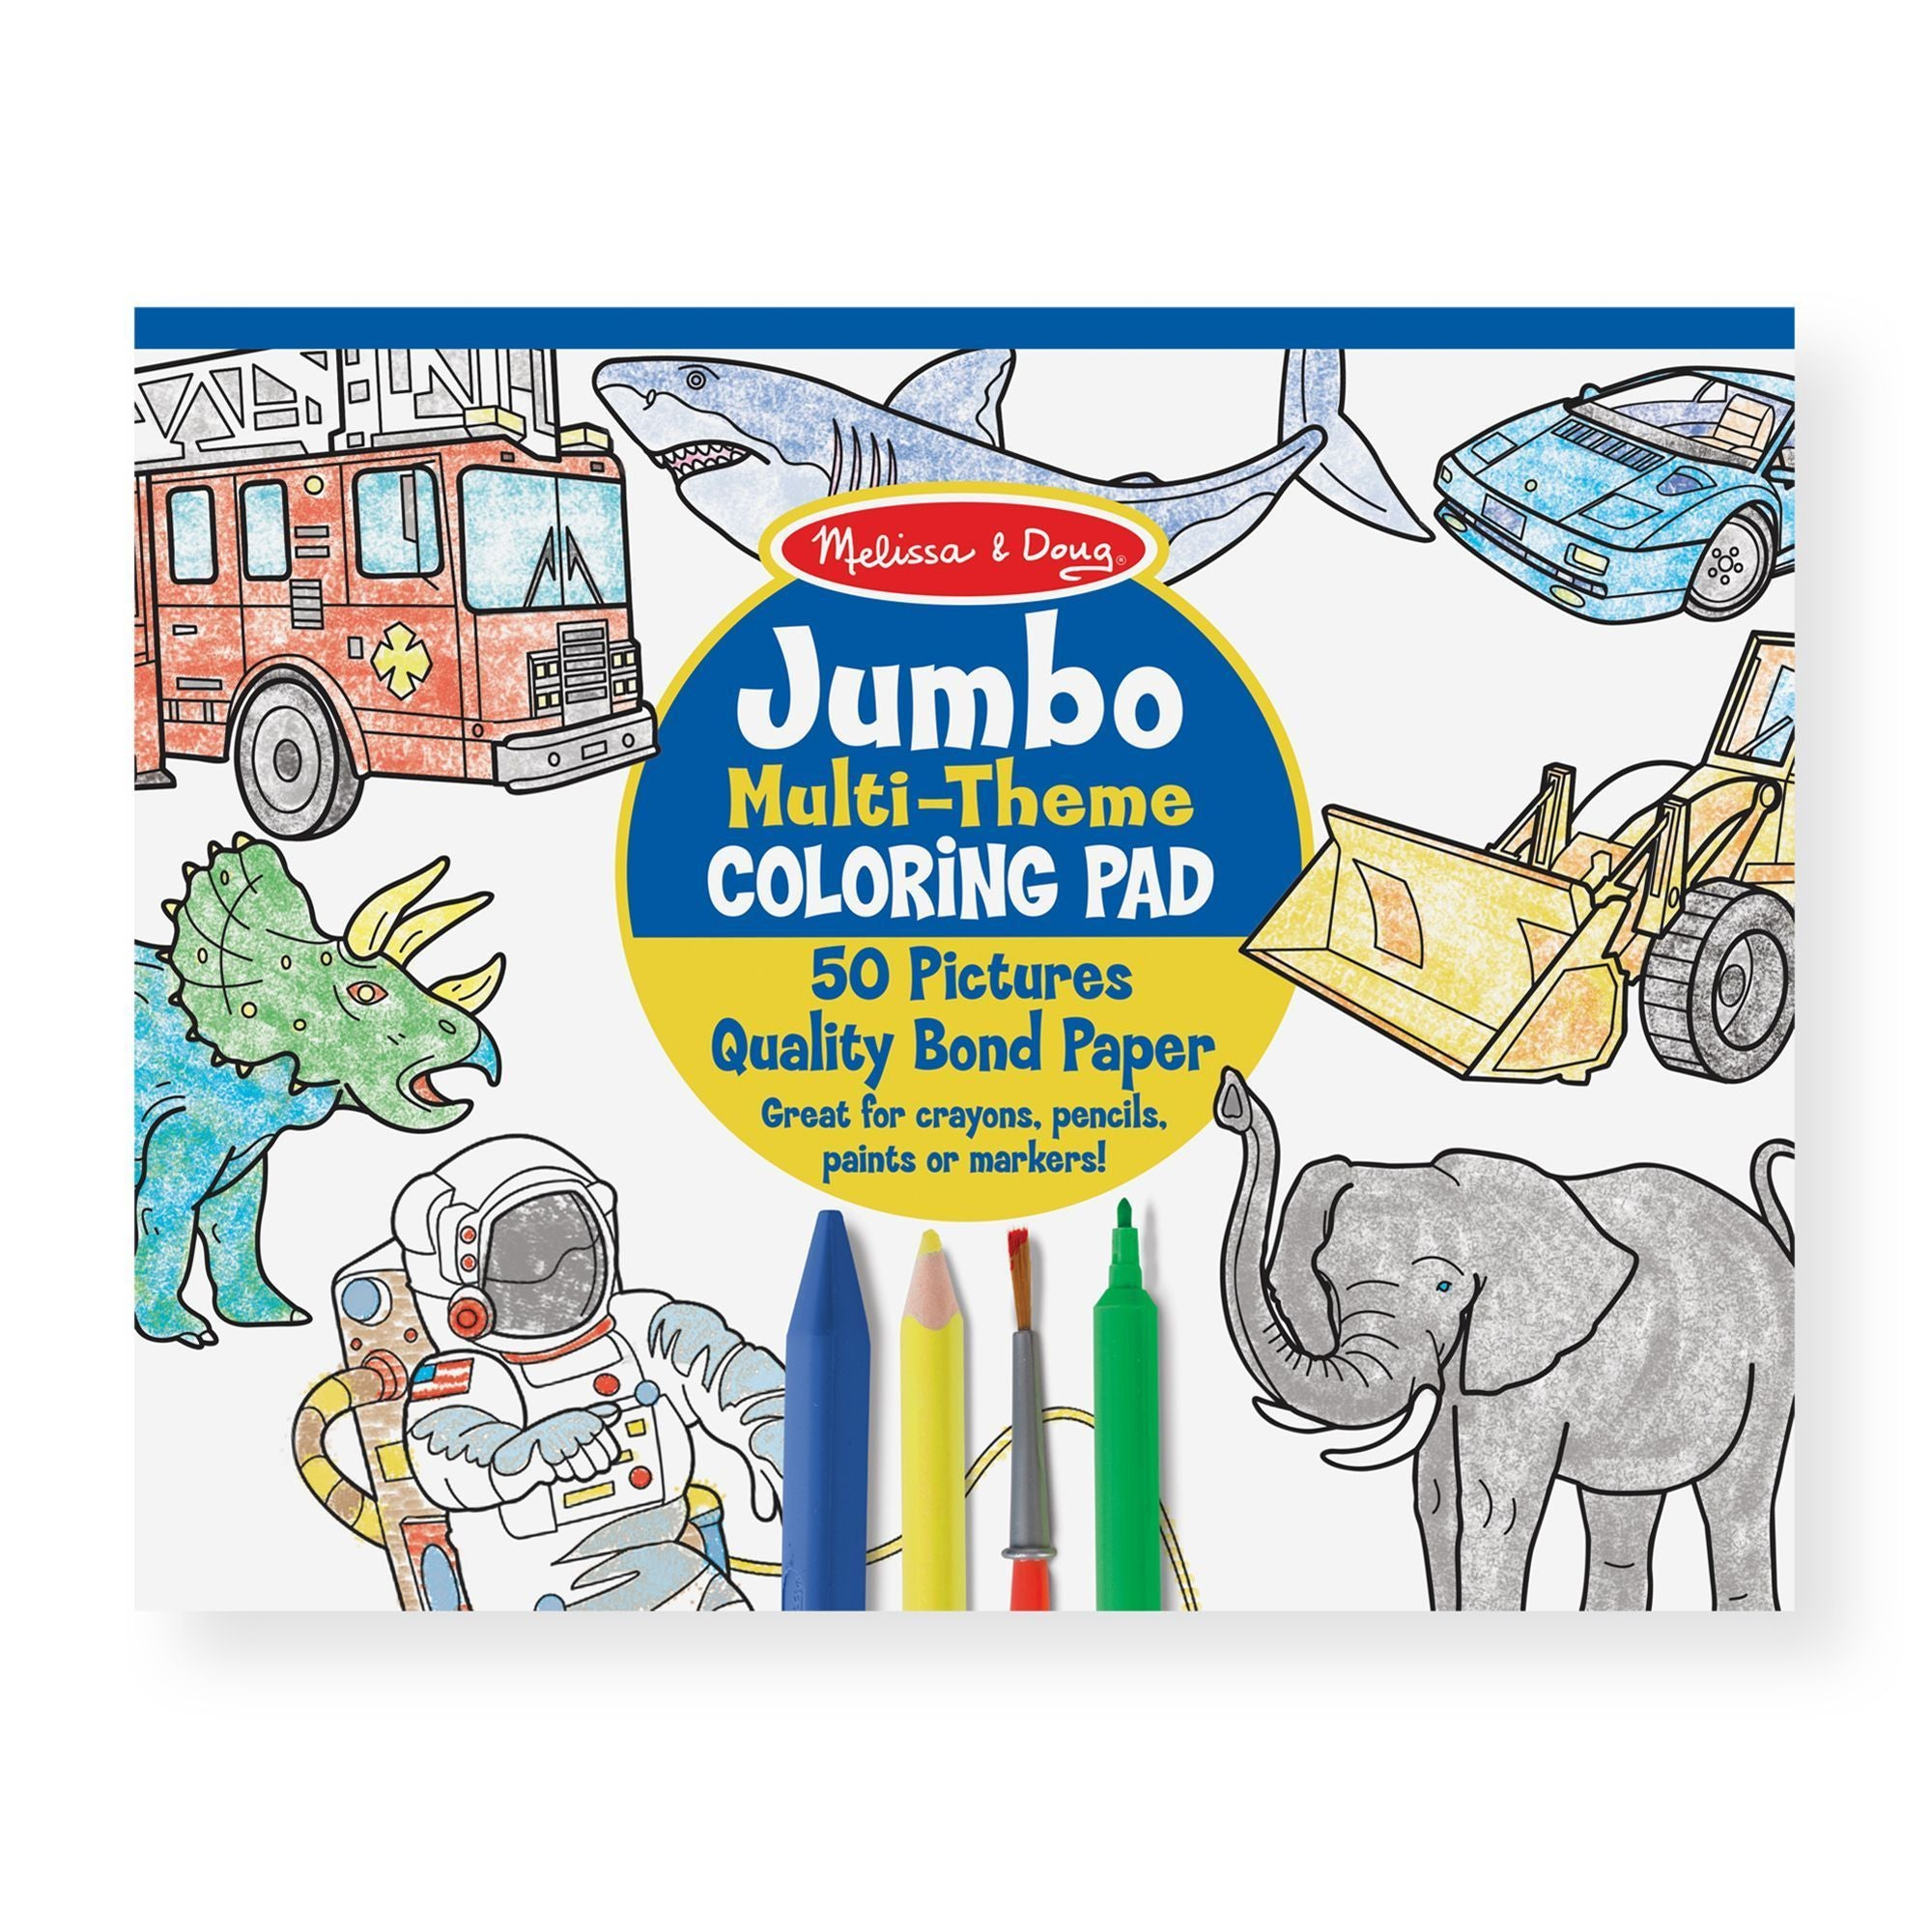 Jumbo Coloring Pad - Space, Sharks, Sports